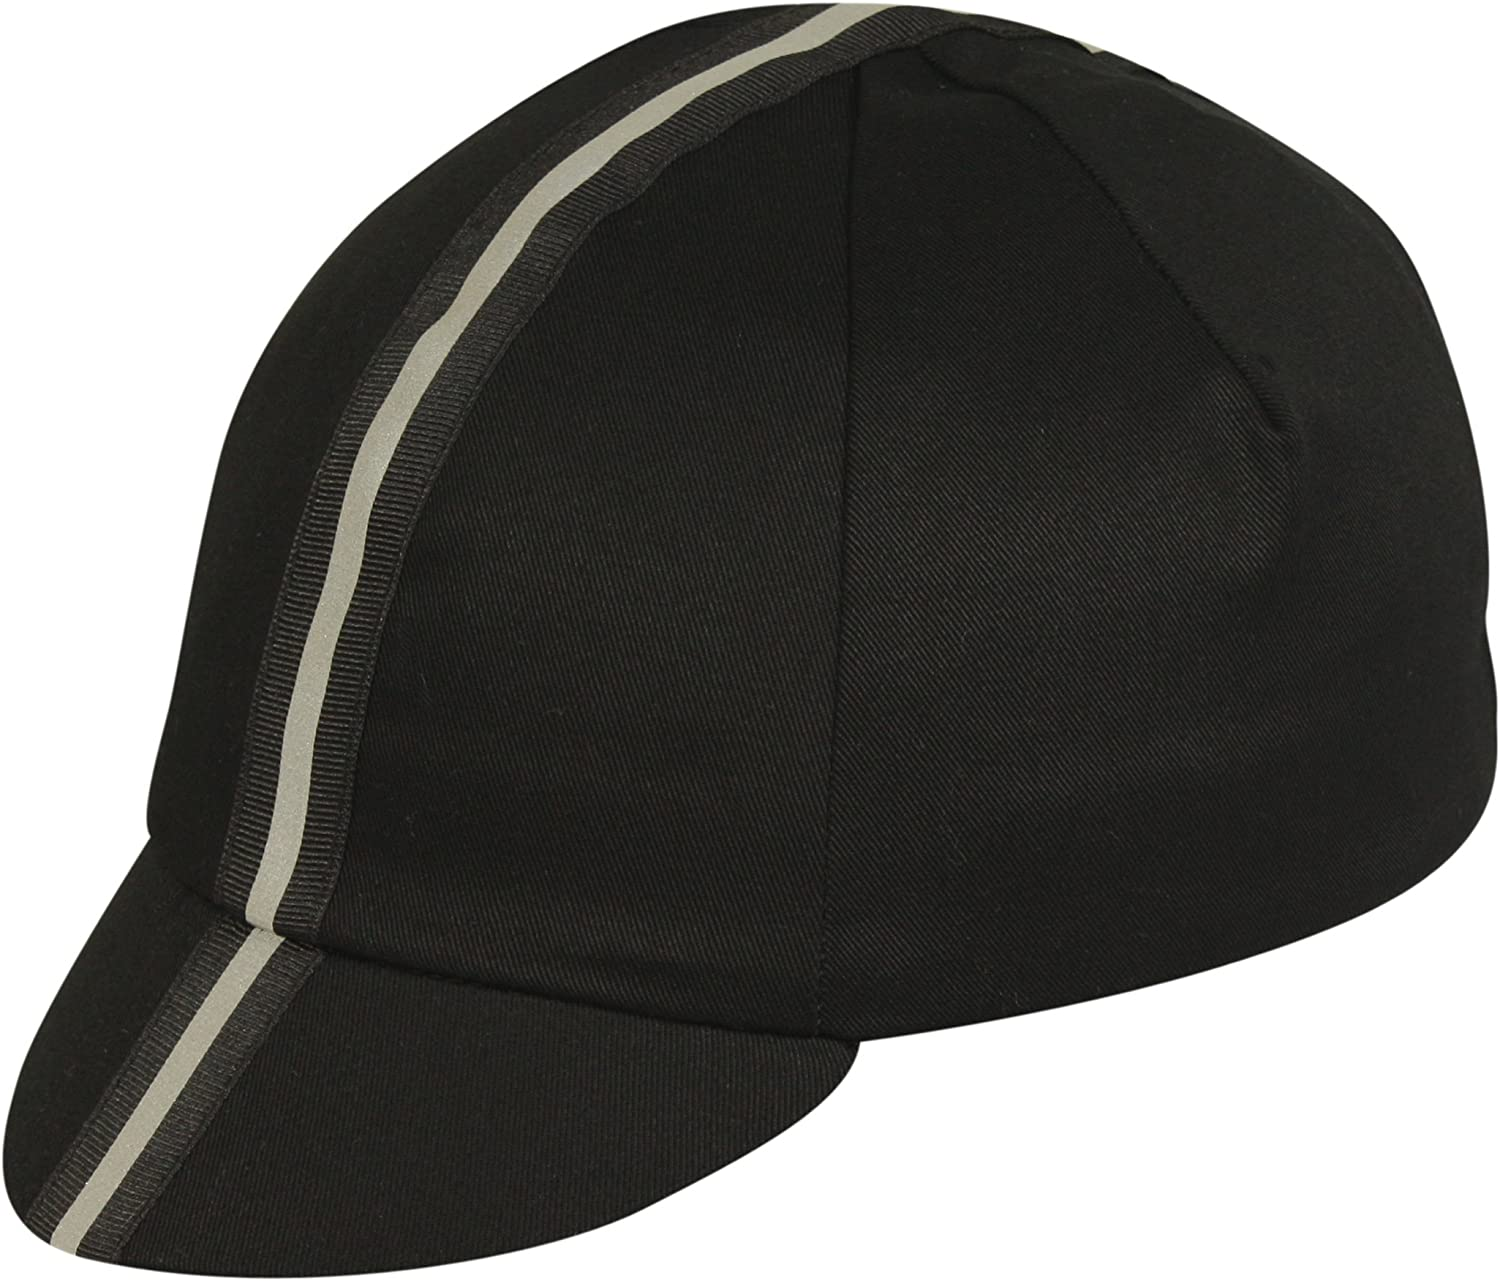 Pace Sportswear Traditional Reflective Cap Black